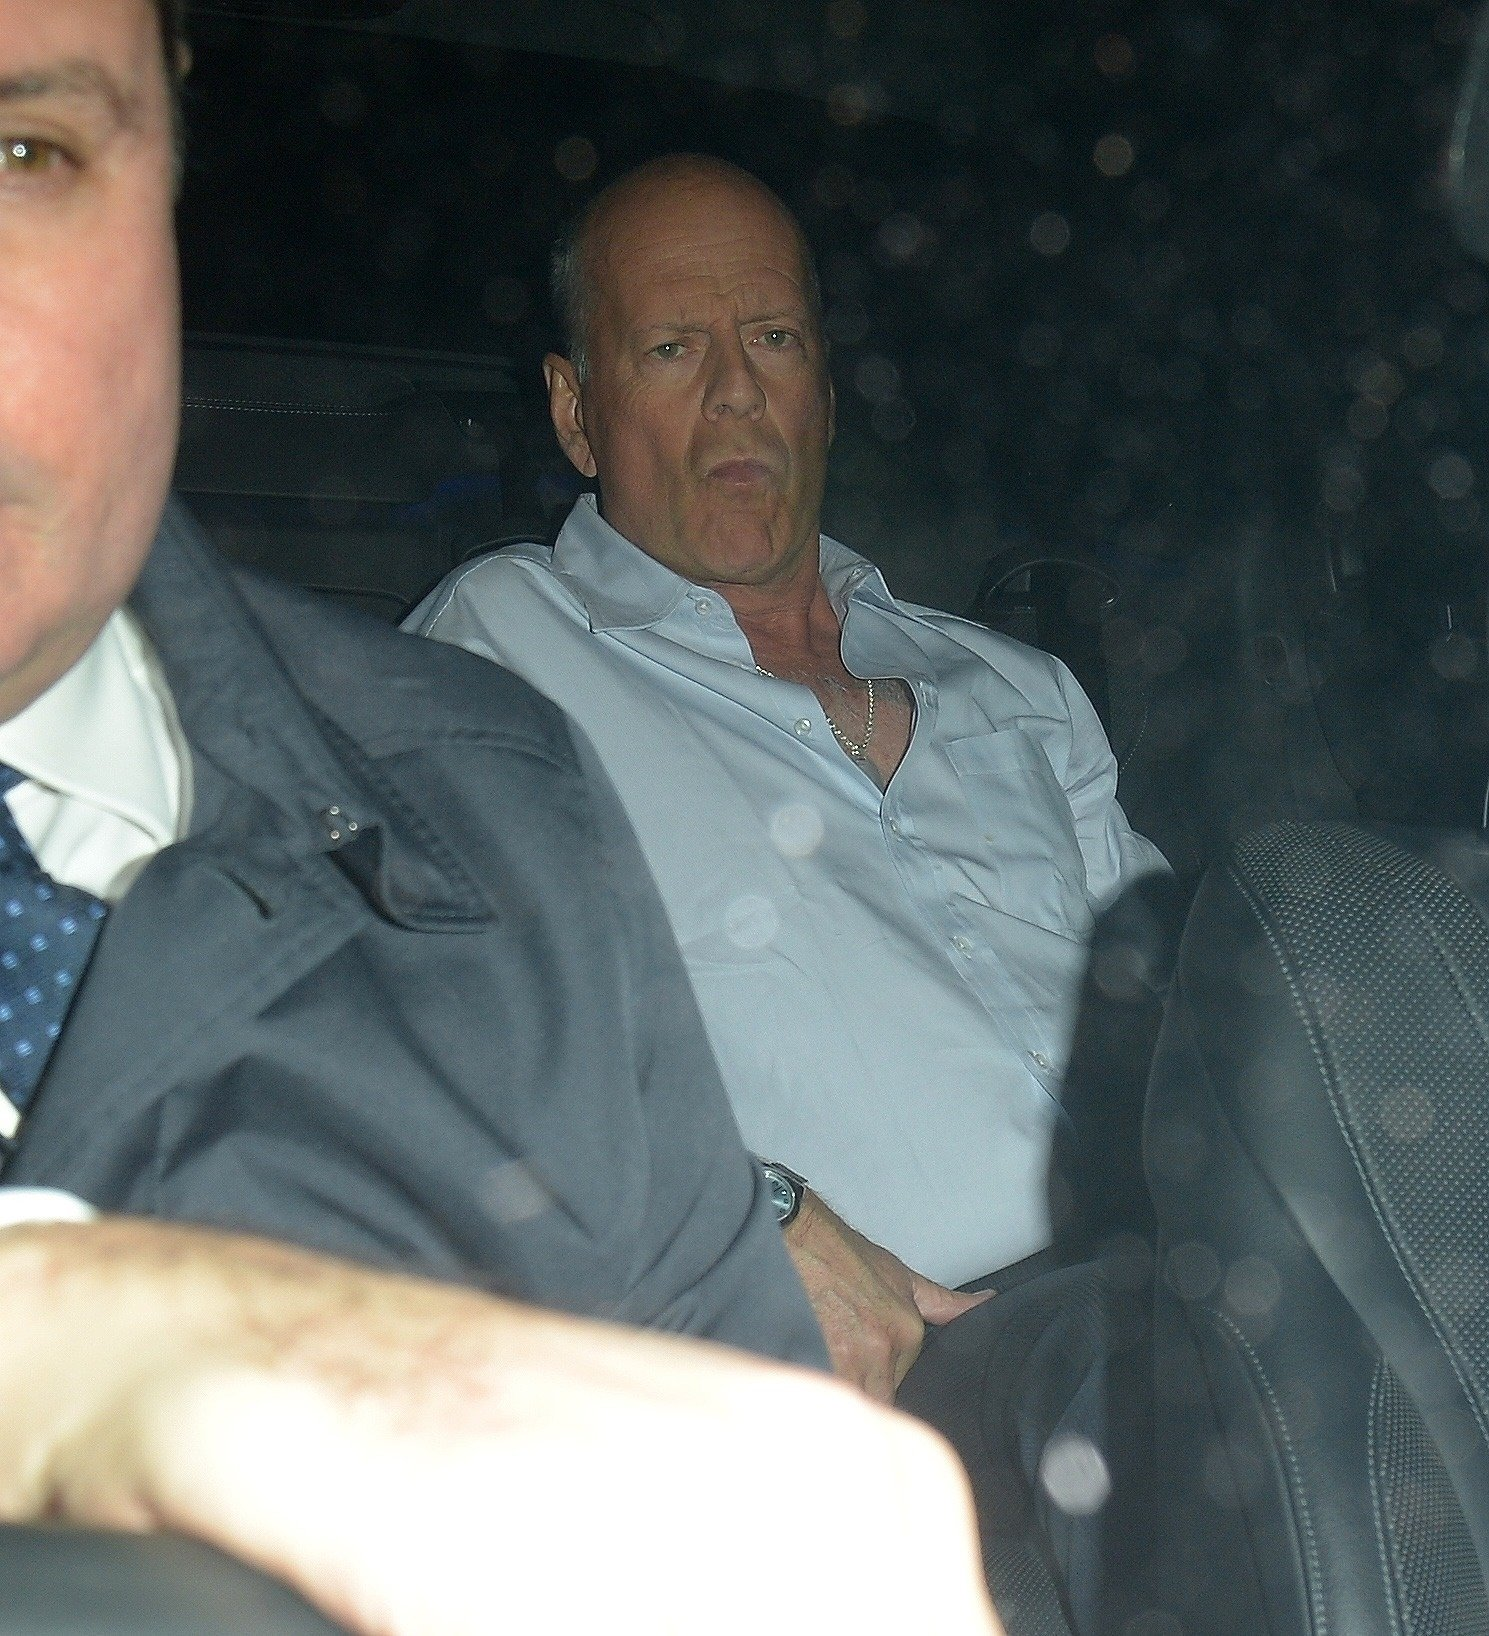 BGUK_1451155 - London, UNITED KINGDOM  - A Very Intoxicated Bruce Willis is seen being helped into his car as he leaves Annabel's Private Members Club  Pictured: Bruce Willis    *UK Clients - Pictures Containing Children Please Pixelate Face Prior To Publication*, Image: 405745939, License: Rights-managed, Restrictions: , Model Release: no, Credit line: Profimedia, Xposurephotos